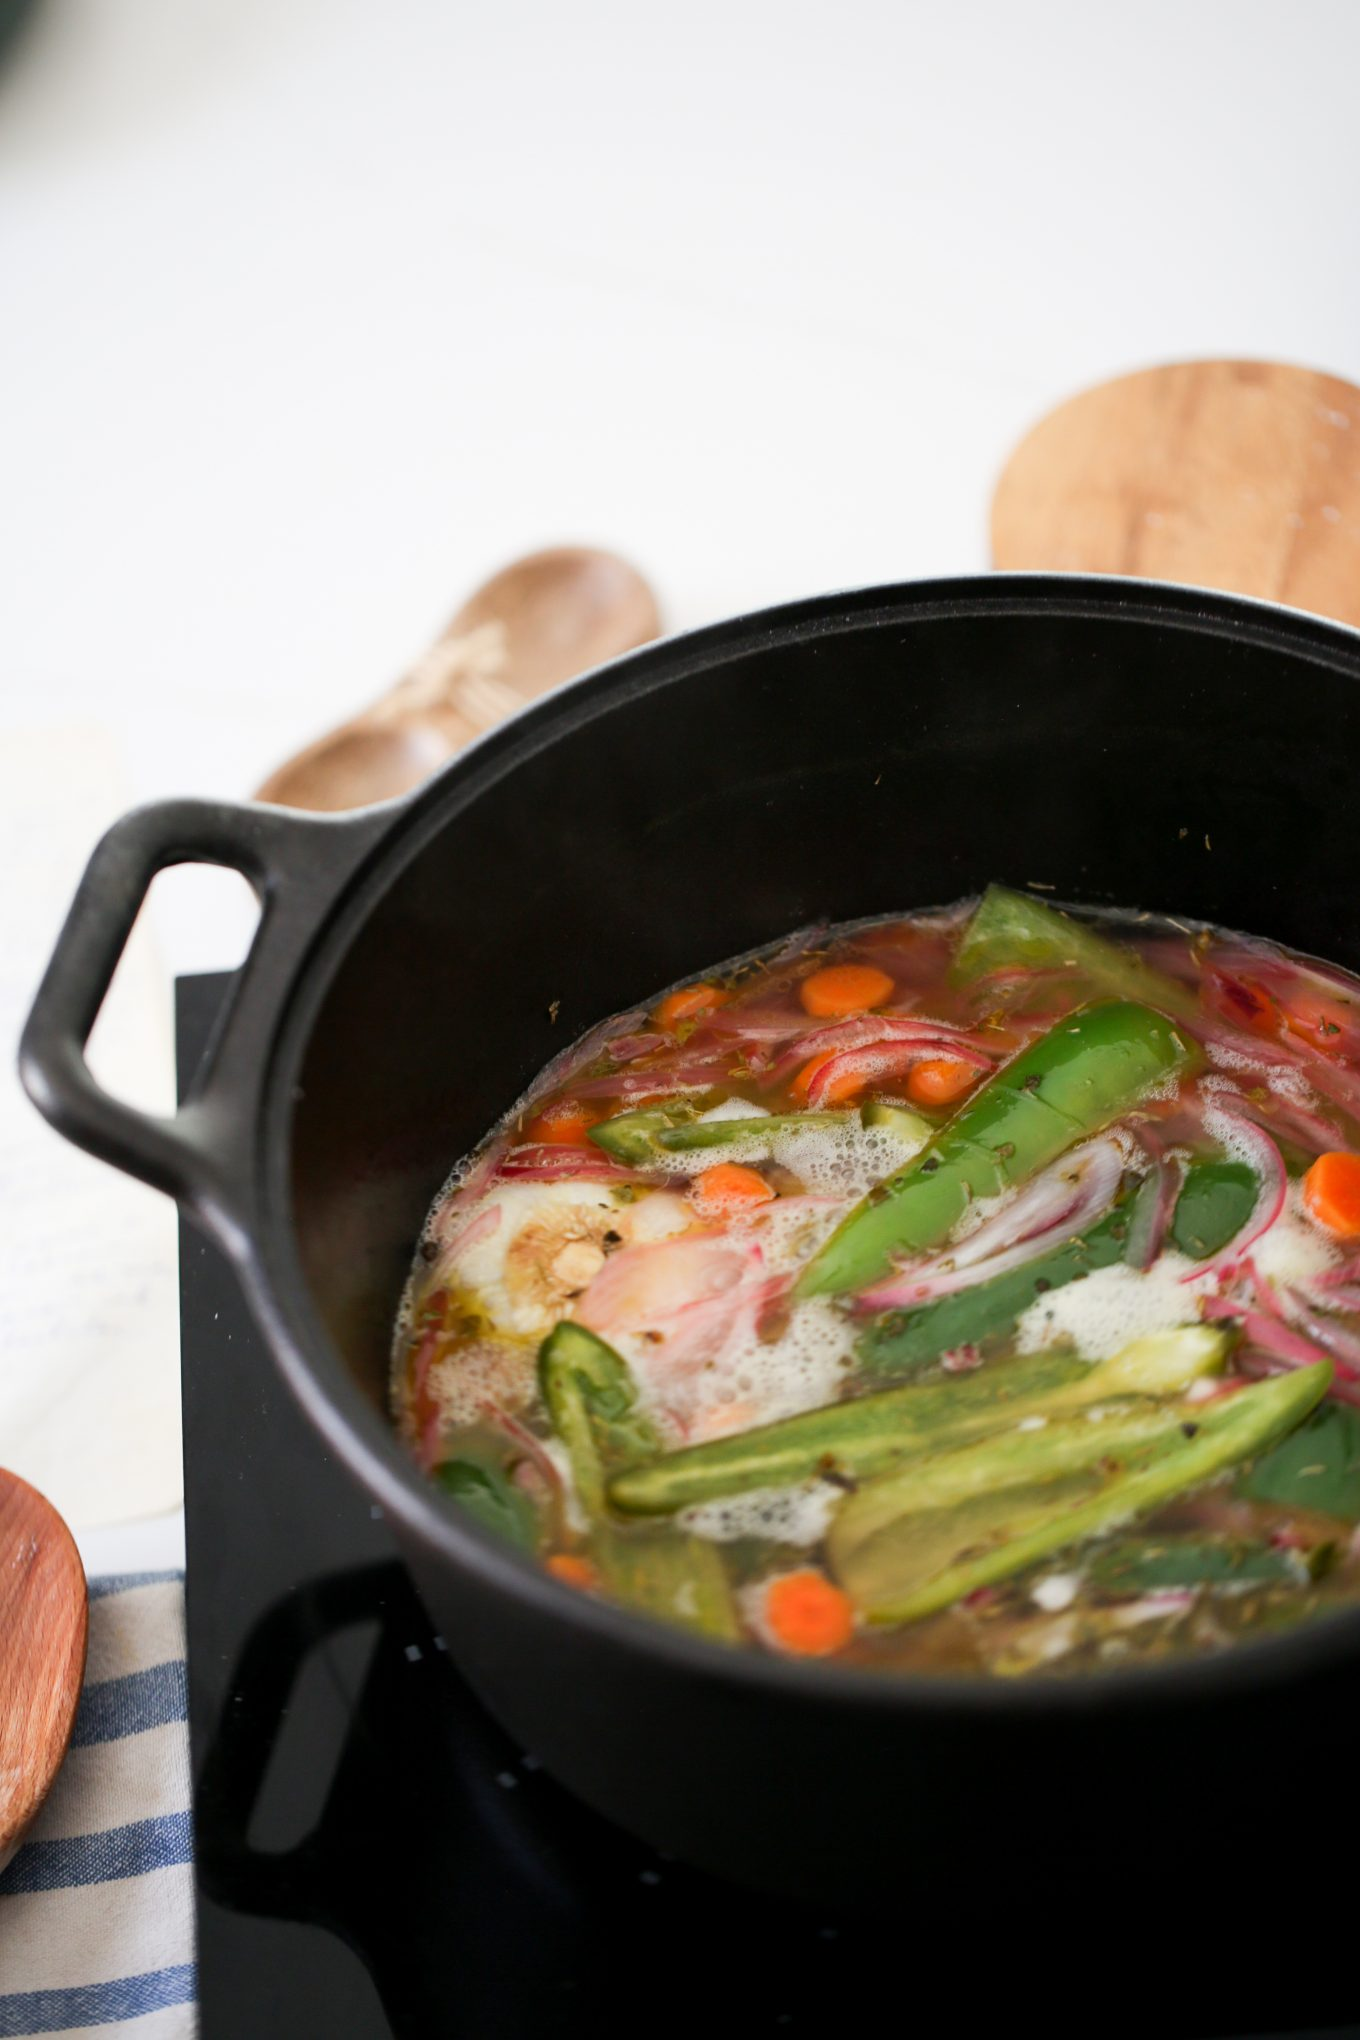 jalapeños, carrots, onions and garlic in a cast iron pot